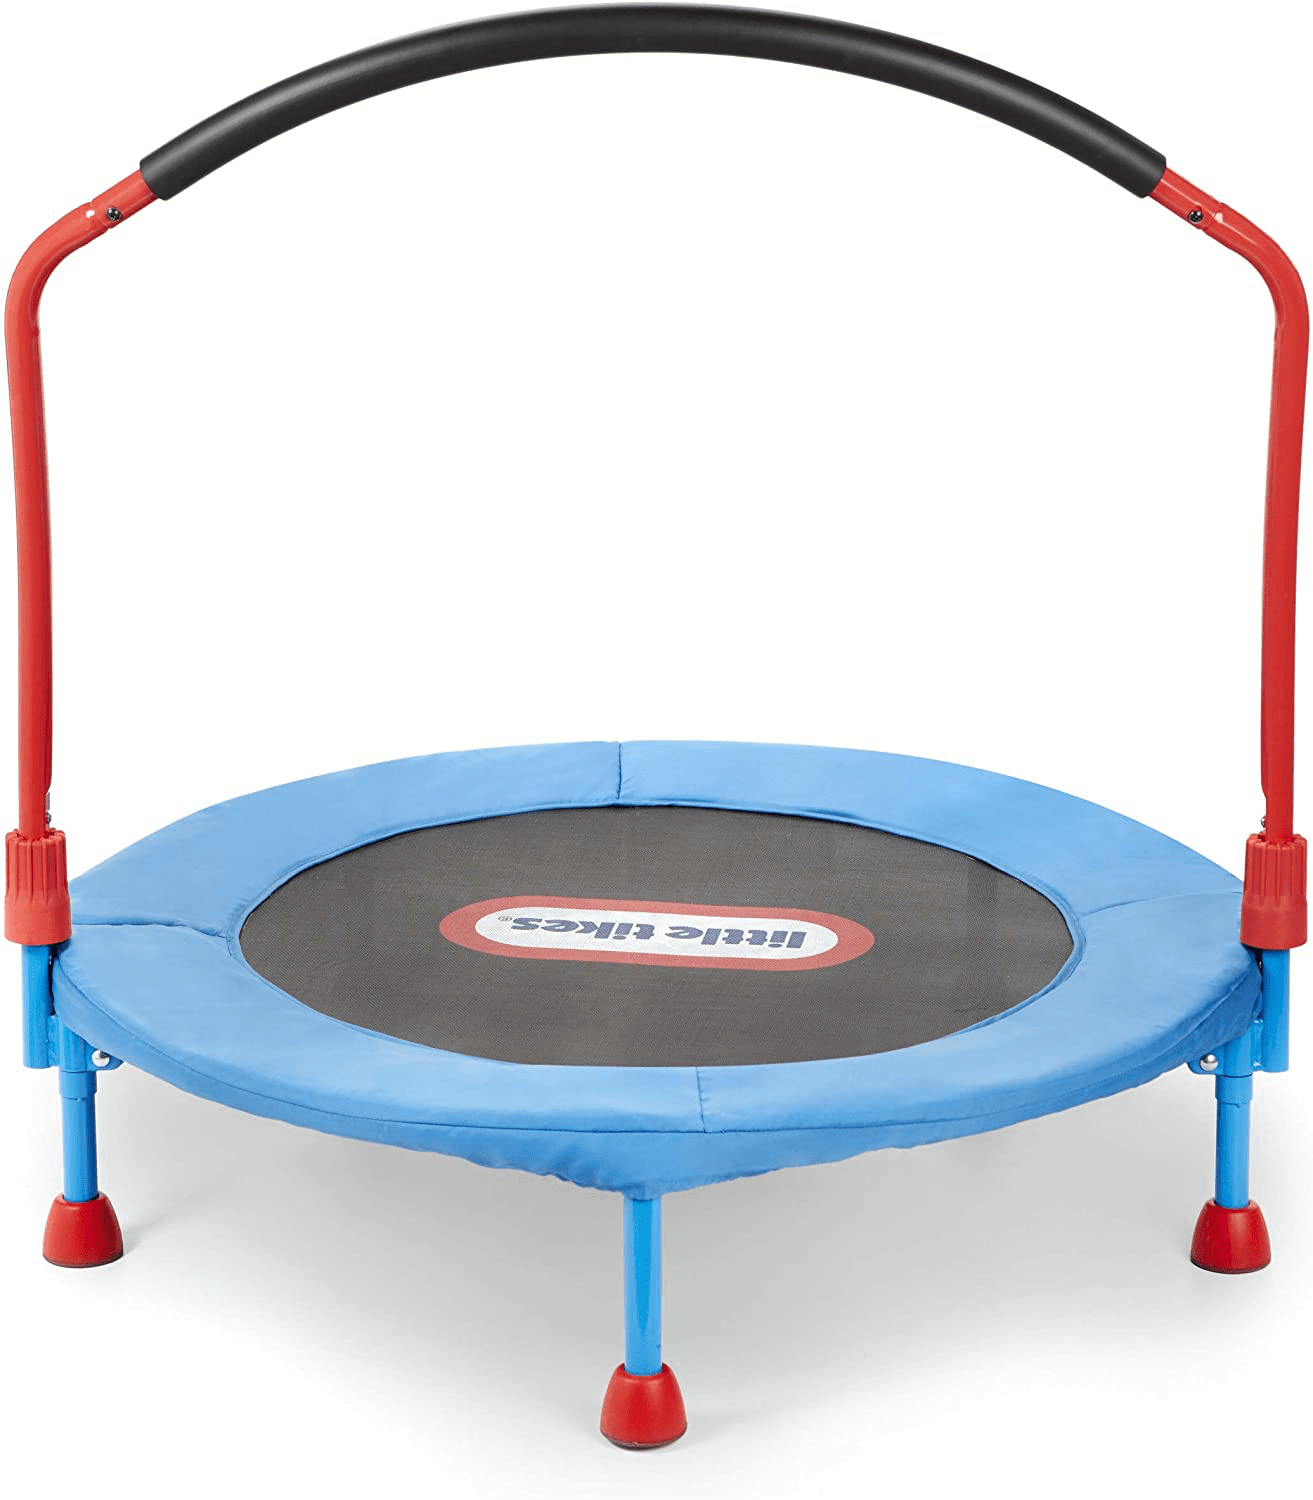 Little Tikes Easy Store 3' Trampoline Review